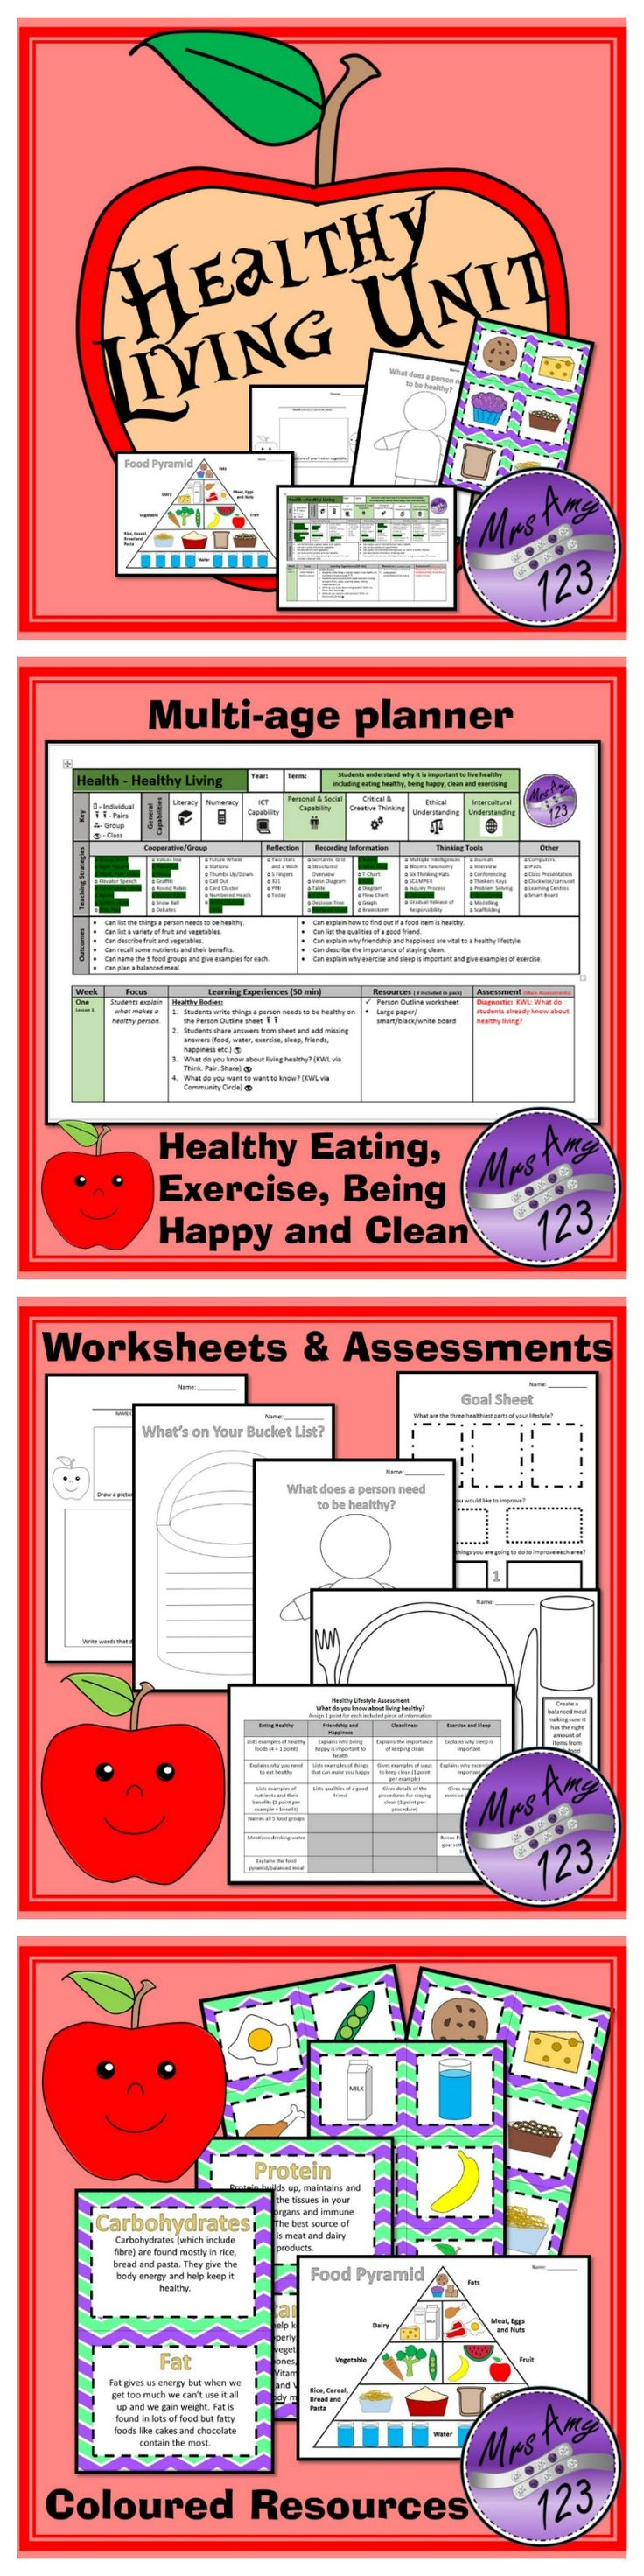 Healthy Living Unit - Healthy Eating, Exercise, Being Happy and Clean